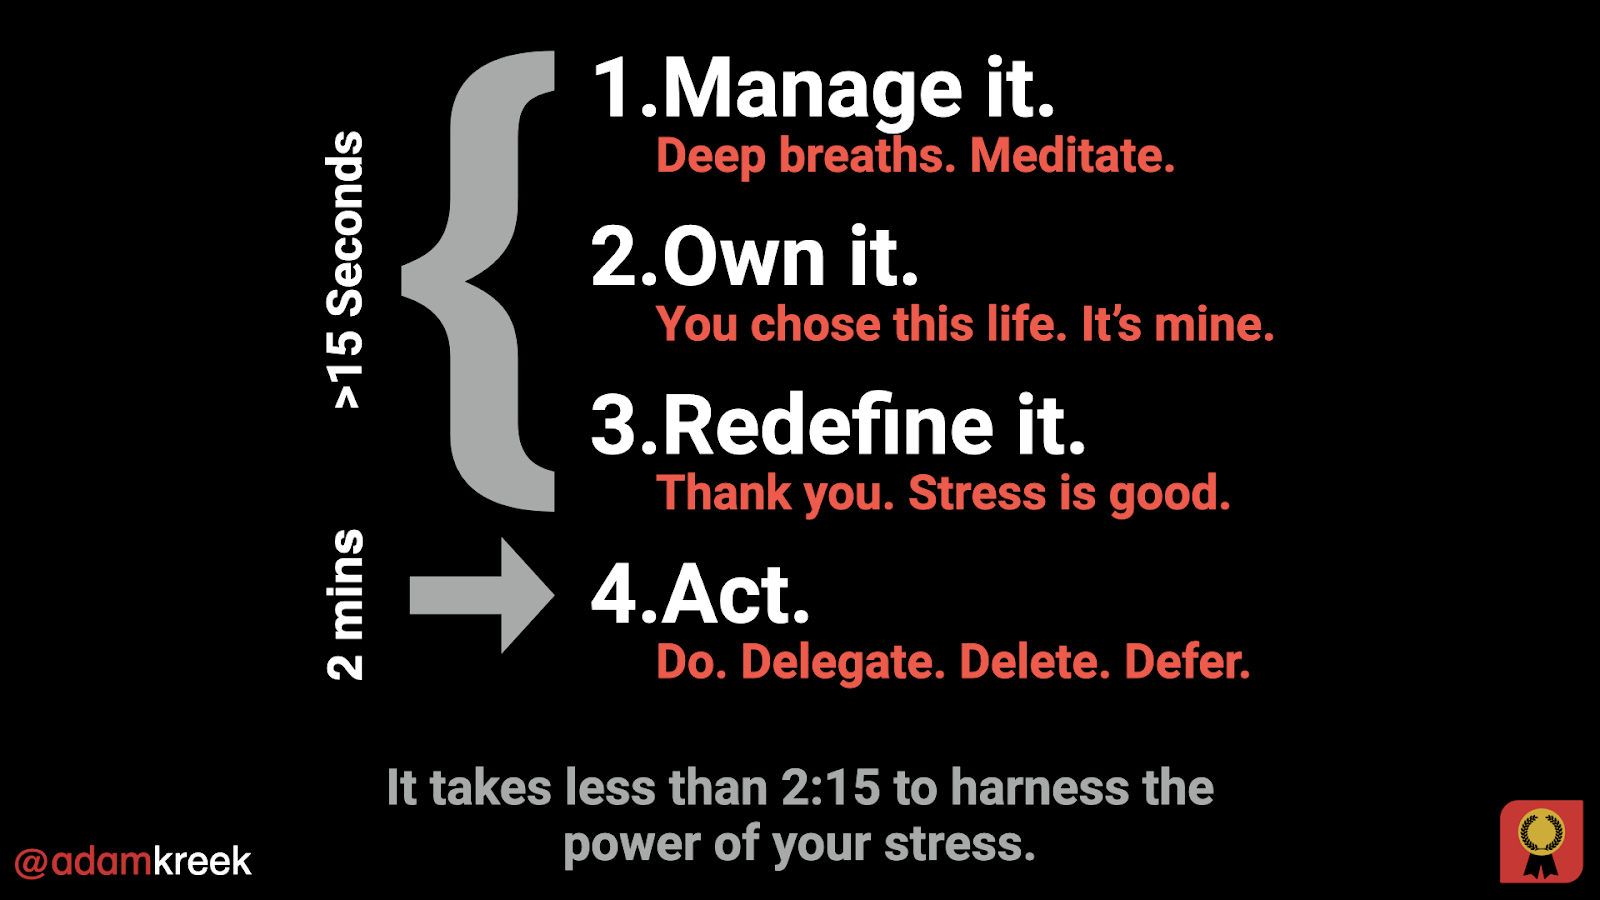 harness the power of your stress